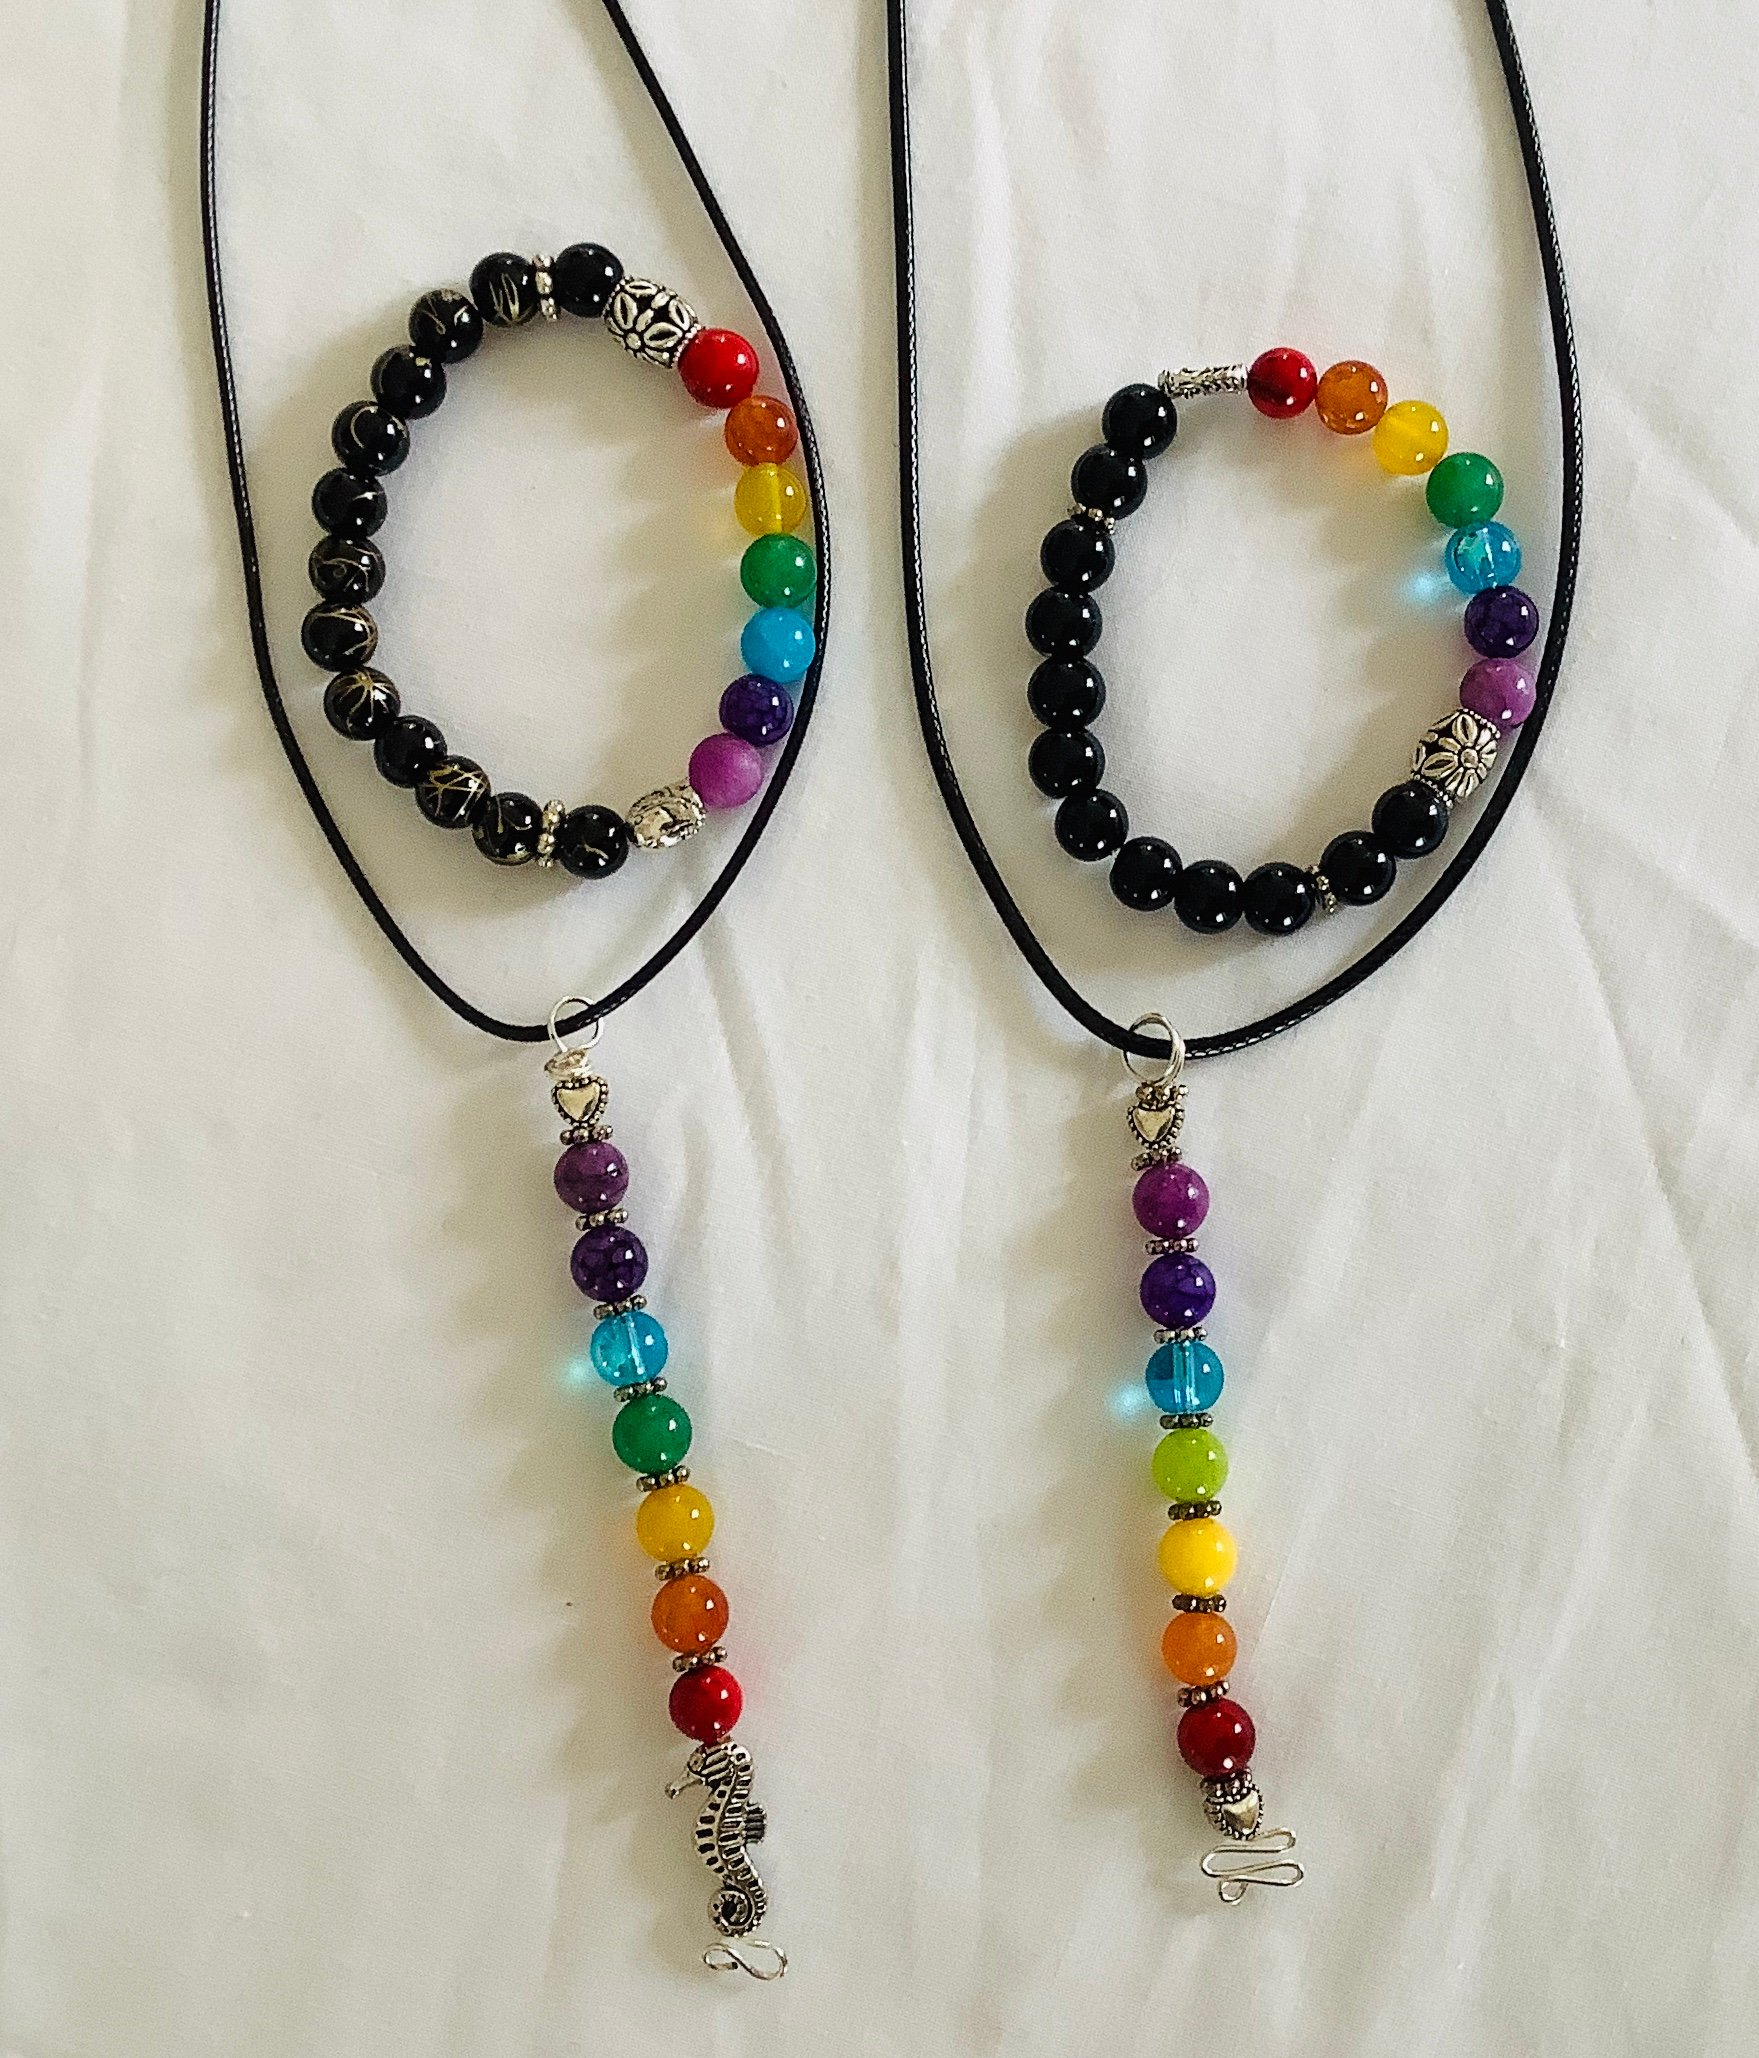 Chakra Pendants and Bracelets. Each piece has the color of each chakra, seven in all, red, orange, yellow, green, blue, purple and light purple.  They are known to be the centers of spiritual power in the human body.  Pendant $20.00 Bracelet $20.00